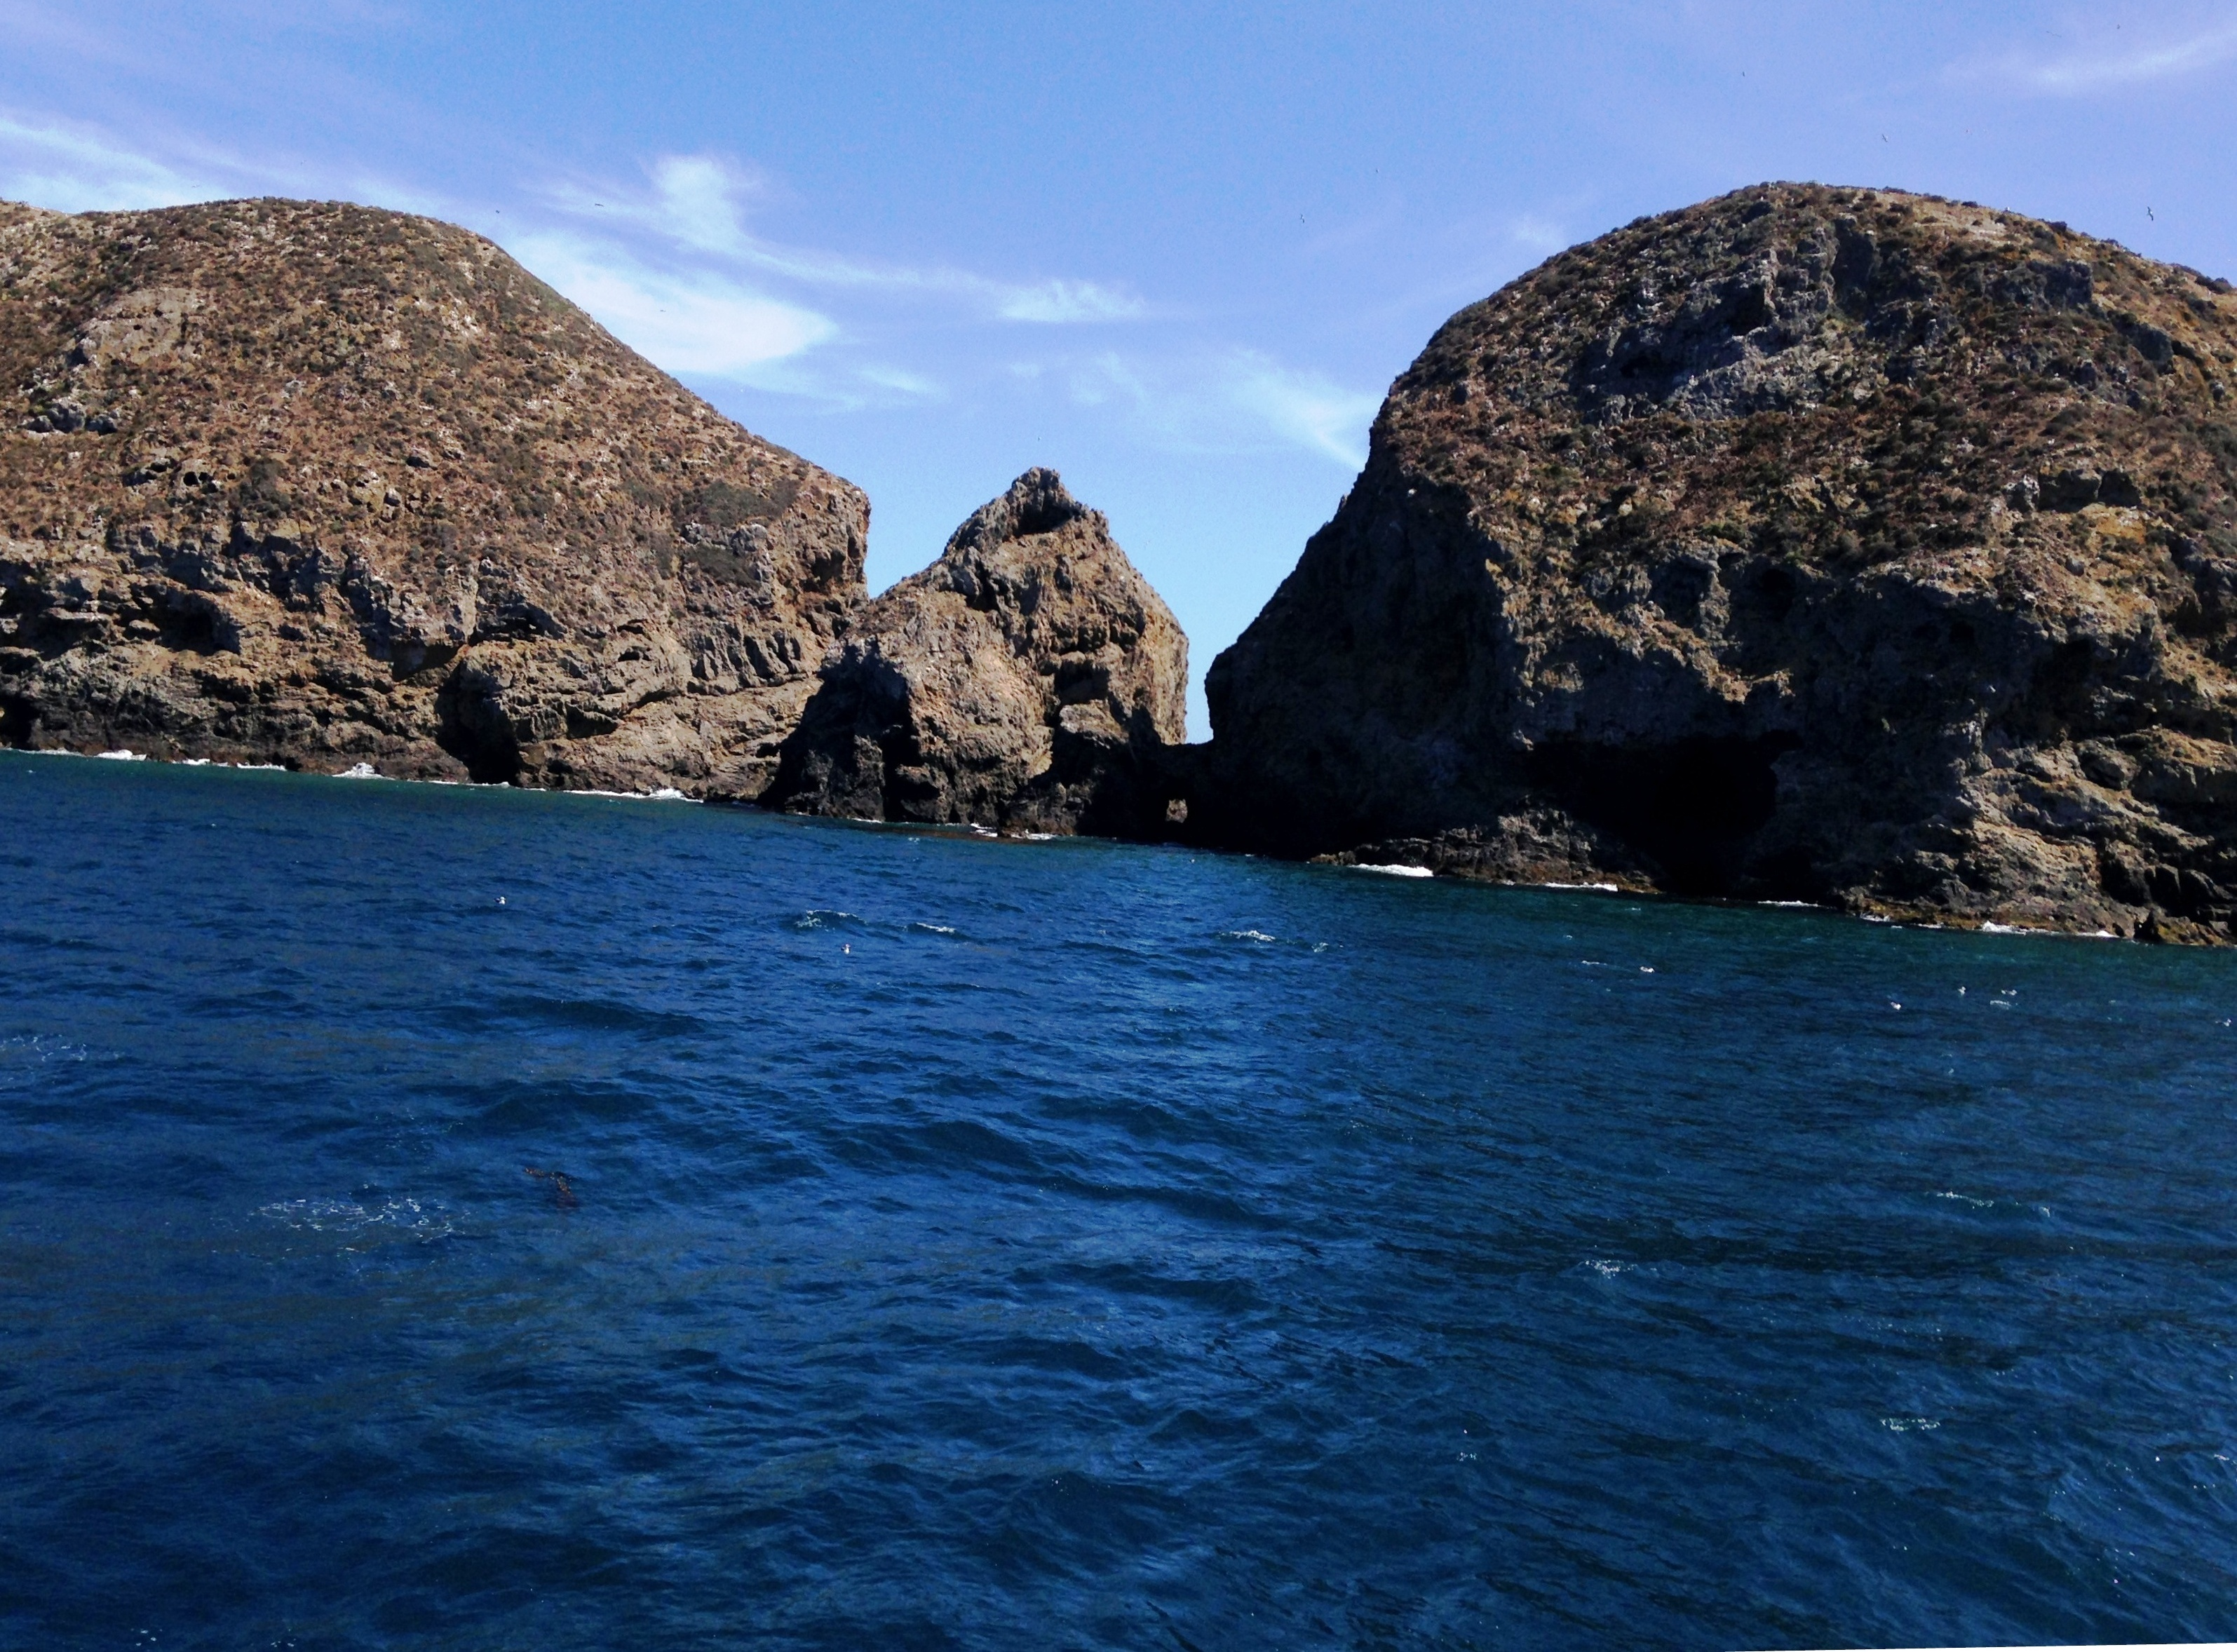 2013-06-24-ChannelIslands_Oxnard.jpg